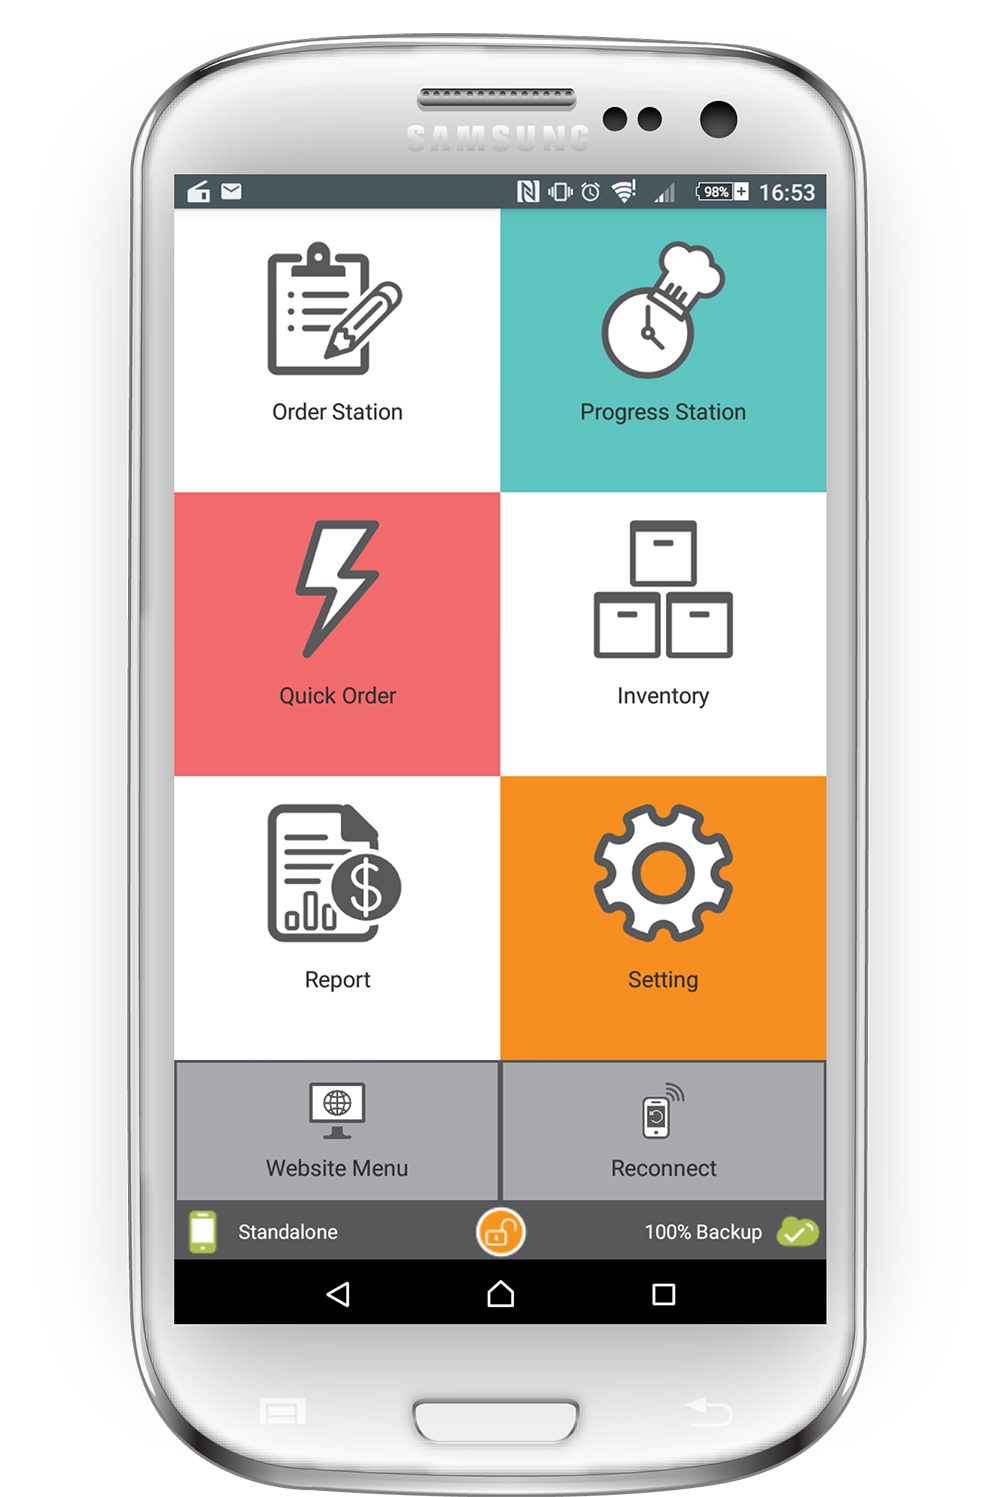 The user-friendly interface is designed for use by chefs, waiters and managers